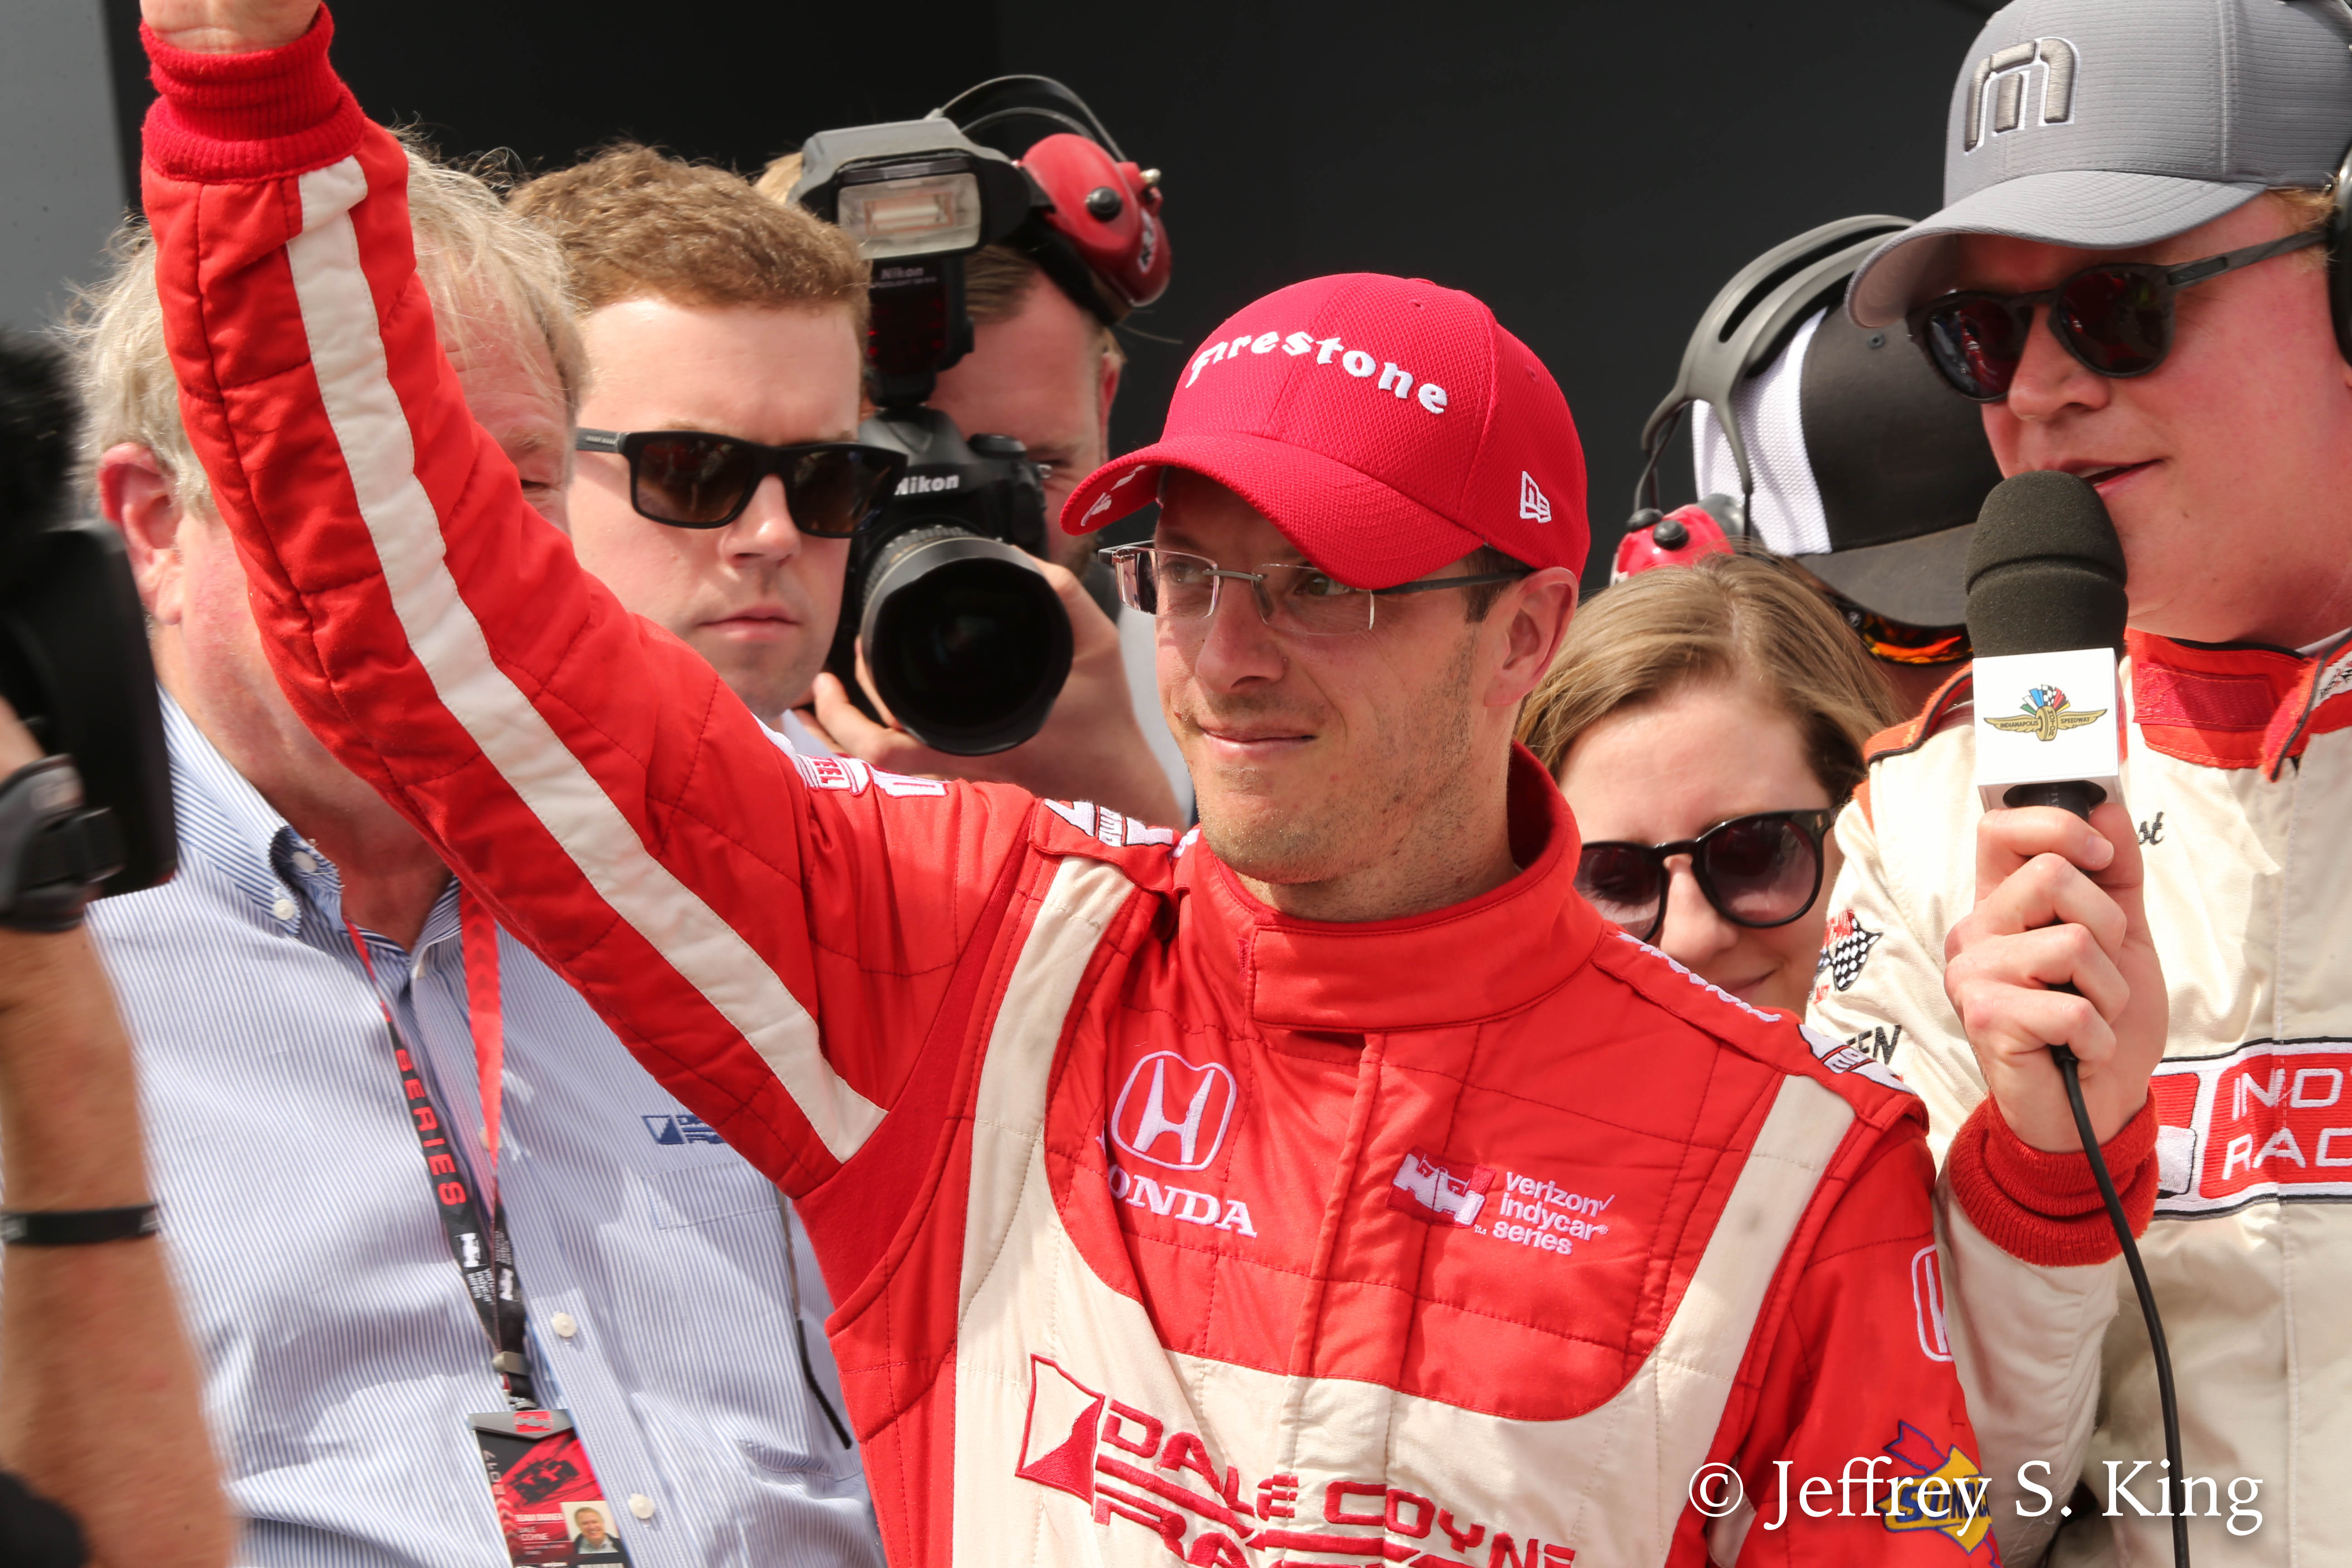 Bourdaia won the Grand Prix on his home course./JEFFREY S. KING